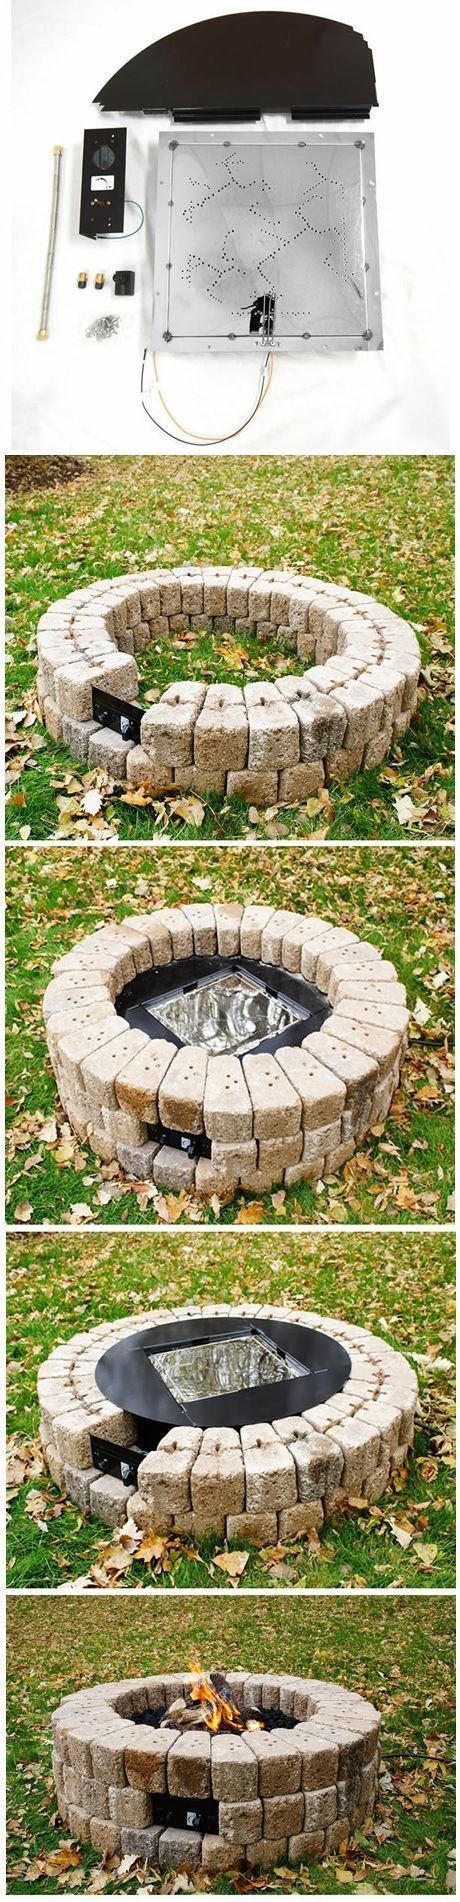 DIY Gas Fire Pit Kit